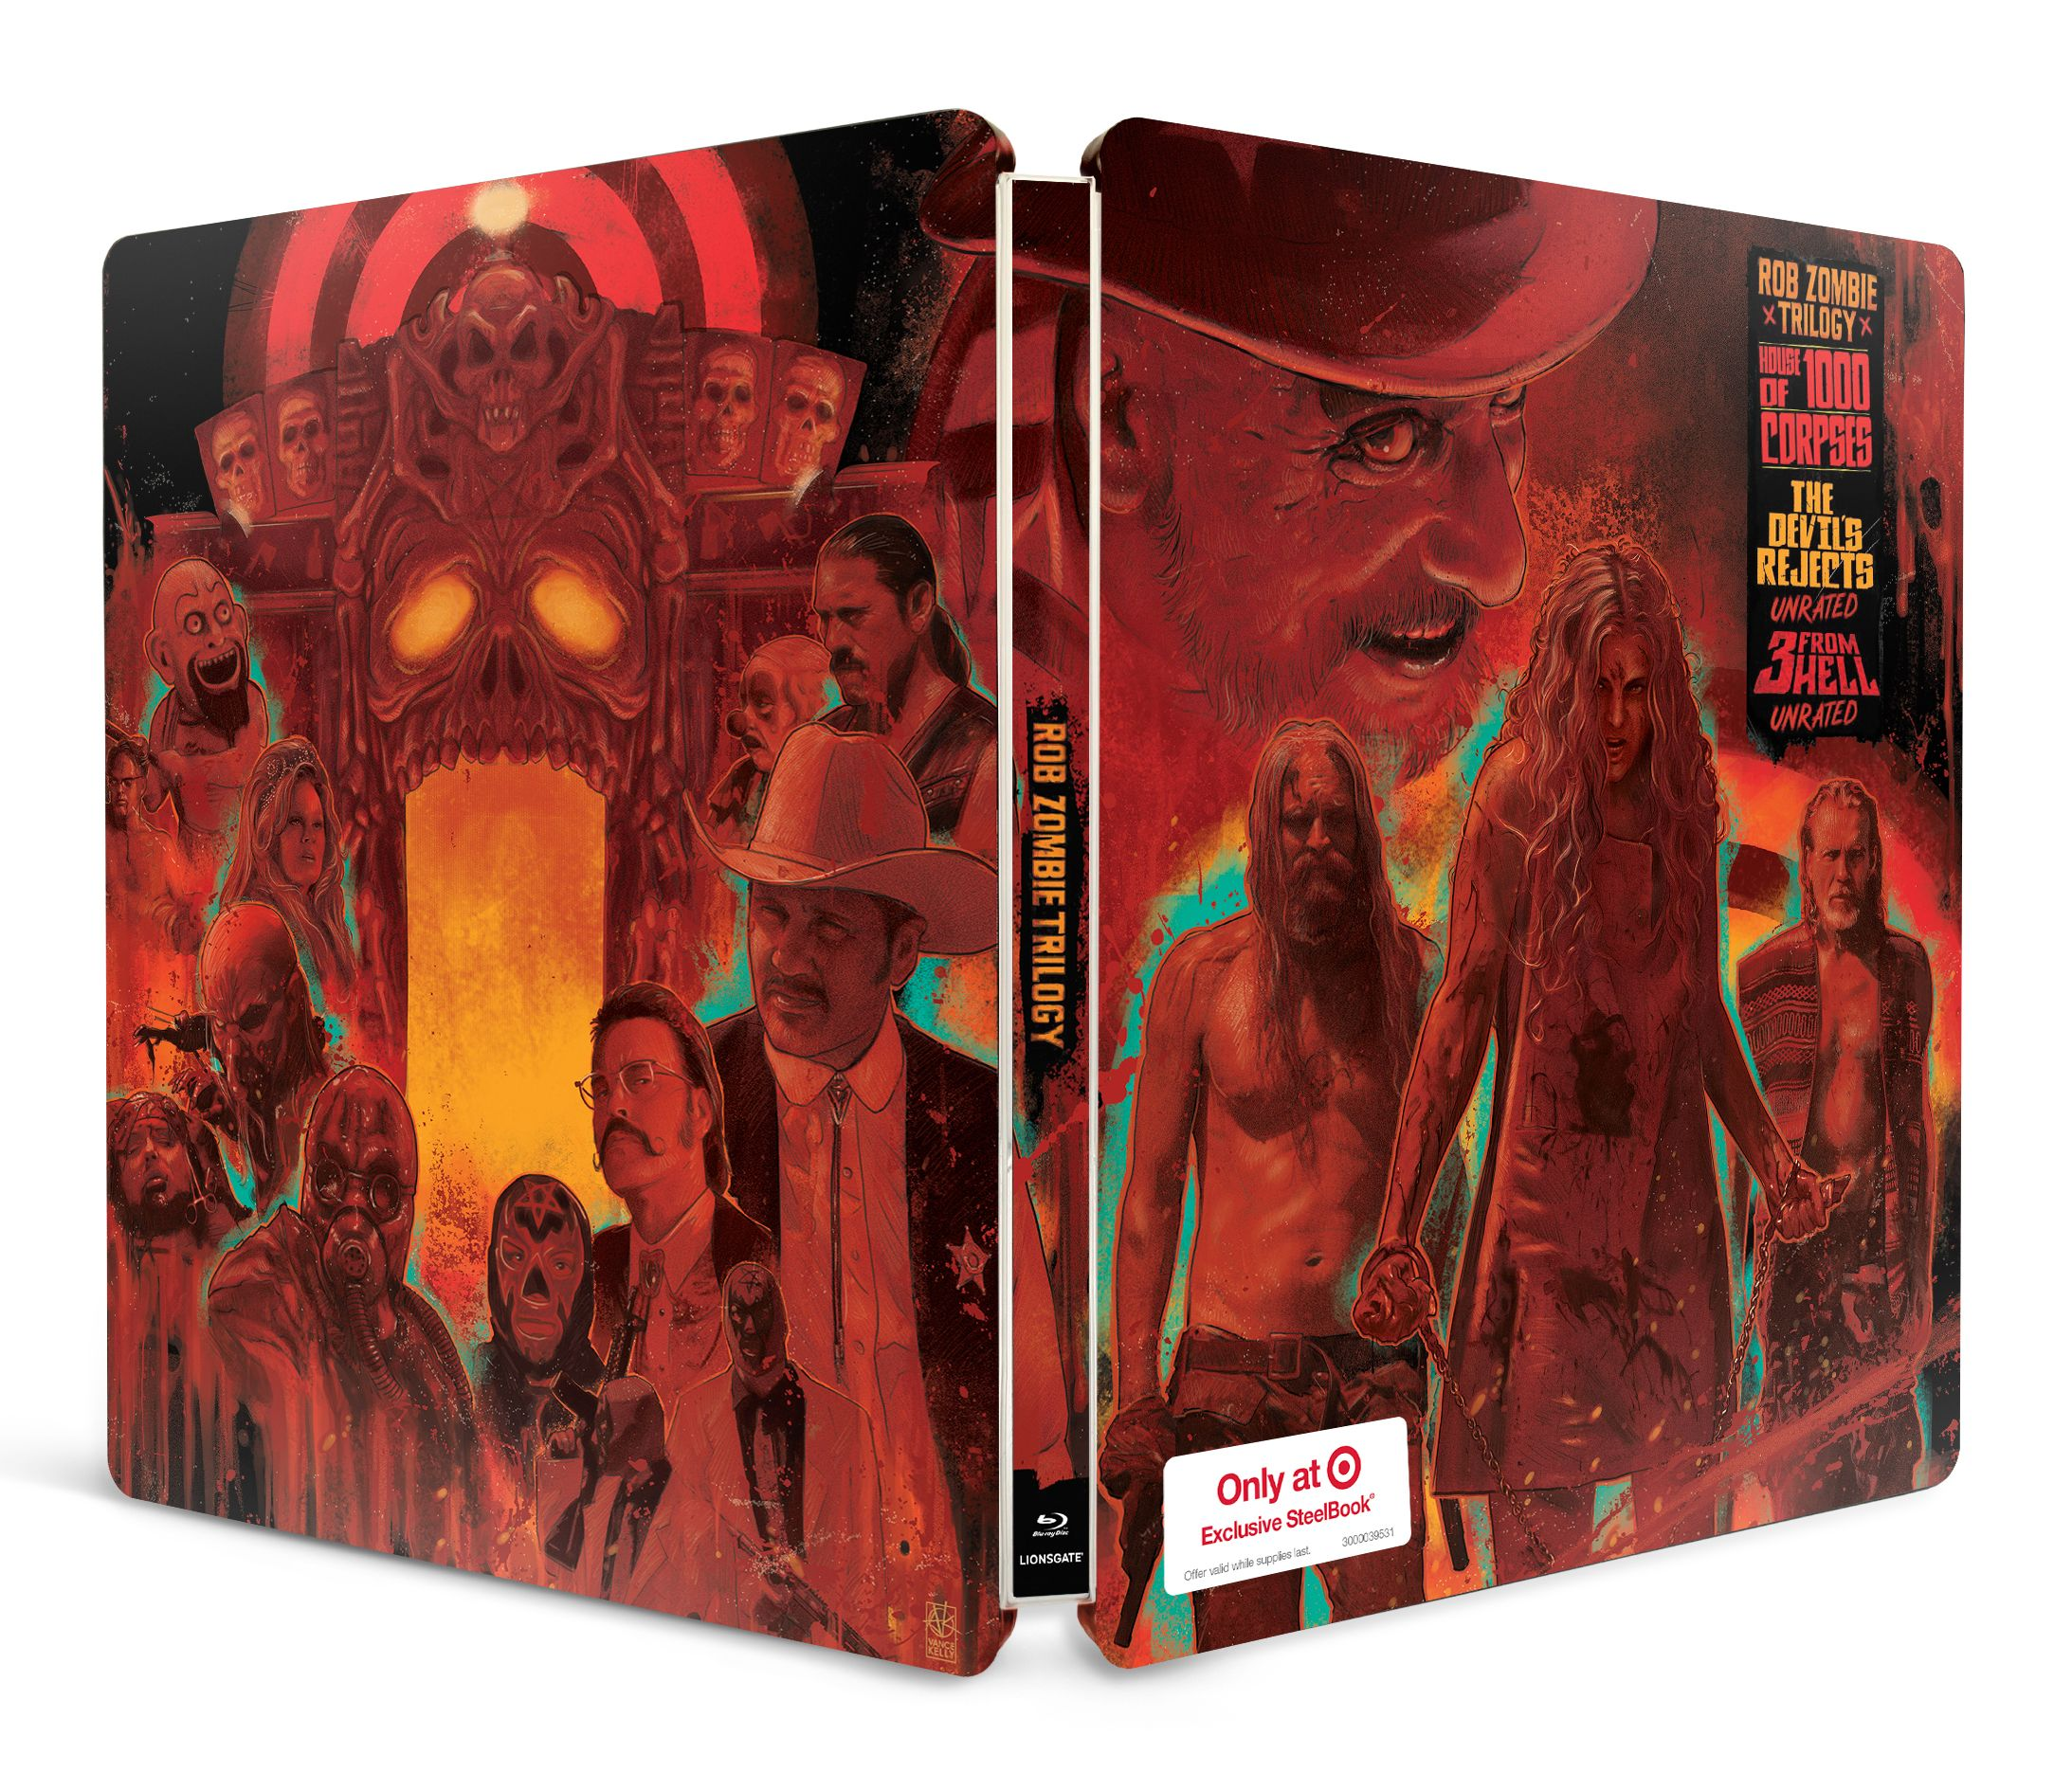 rob-zombie-trilogy-steelbook-blu-ray-box